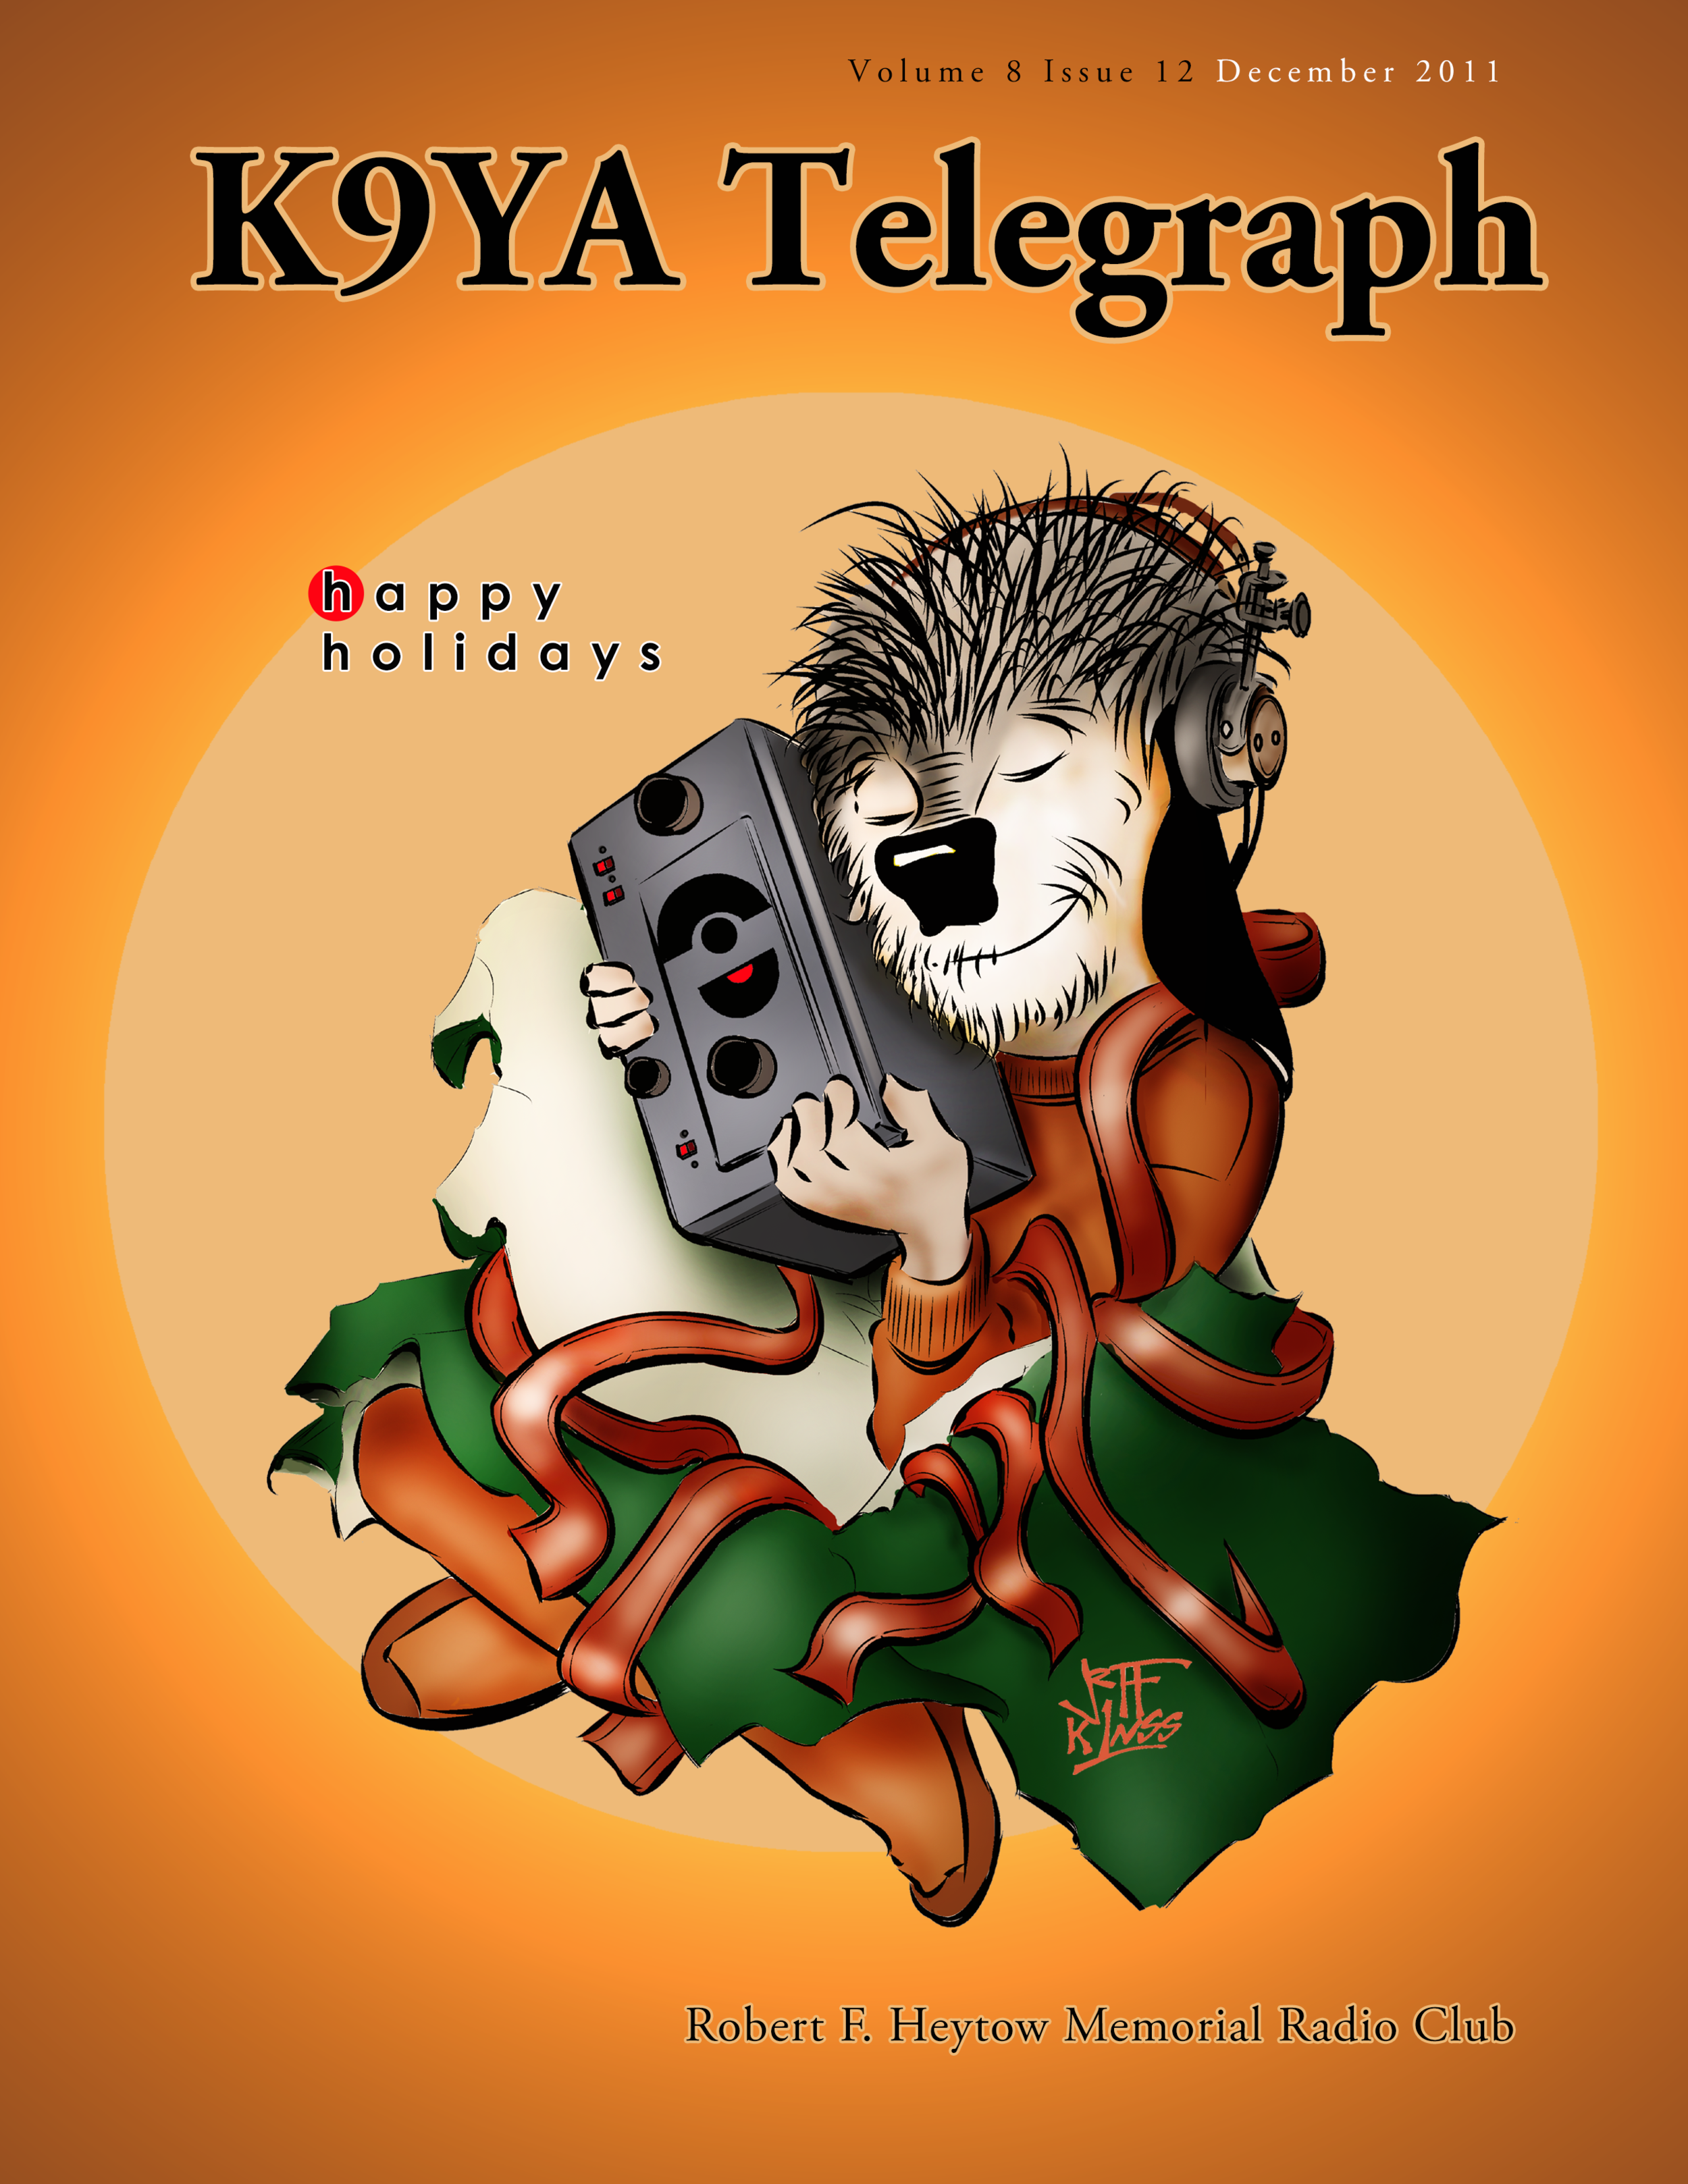 Copy of Holiday Cover 2011 ©2017 K9YA Telegraph